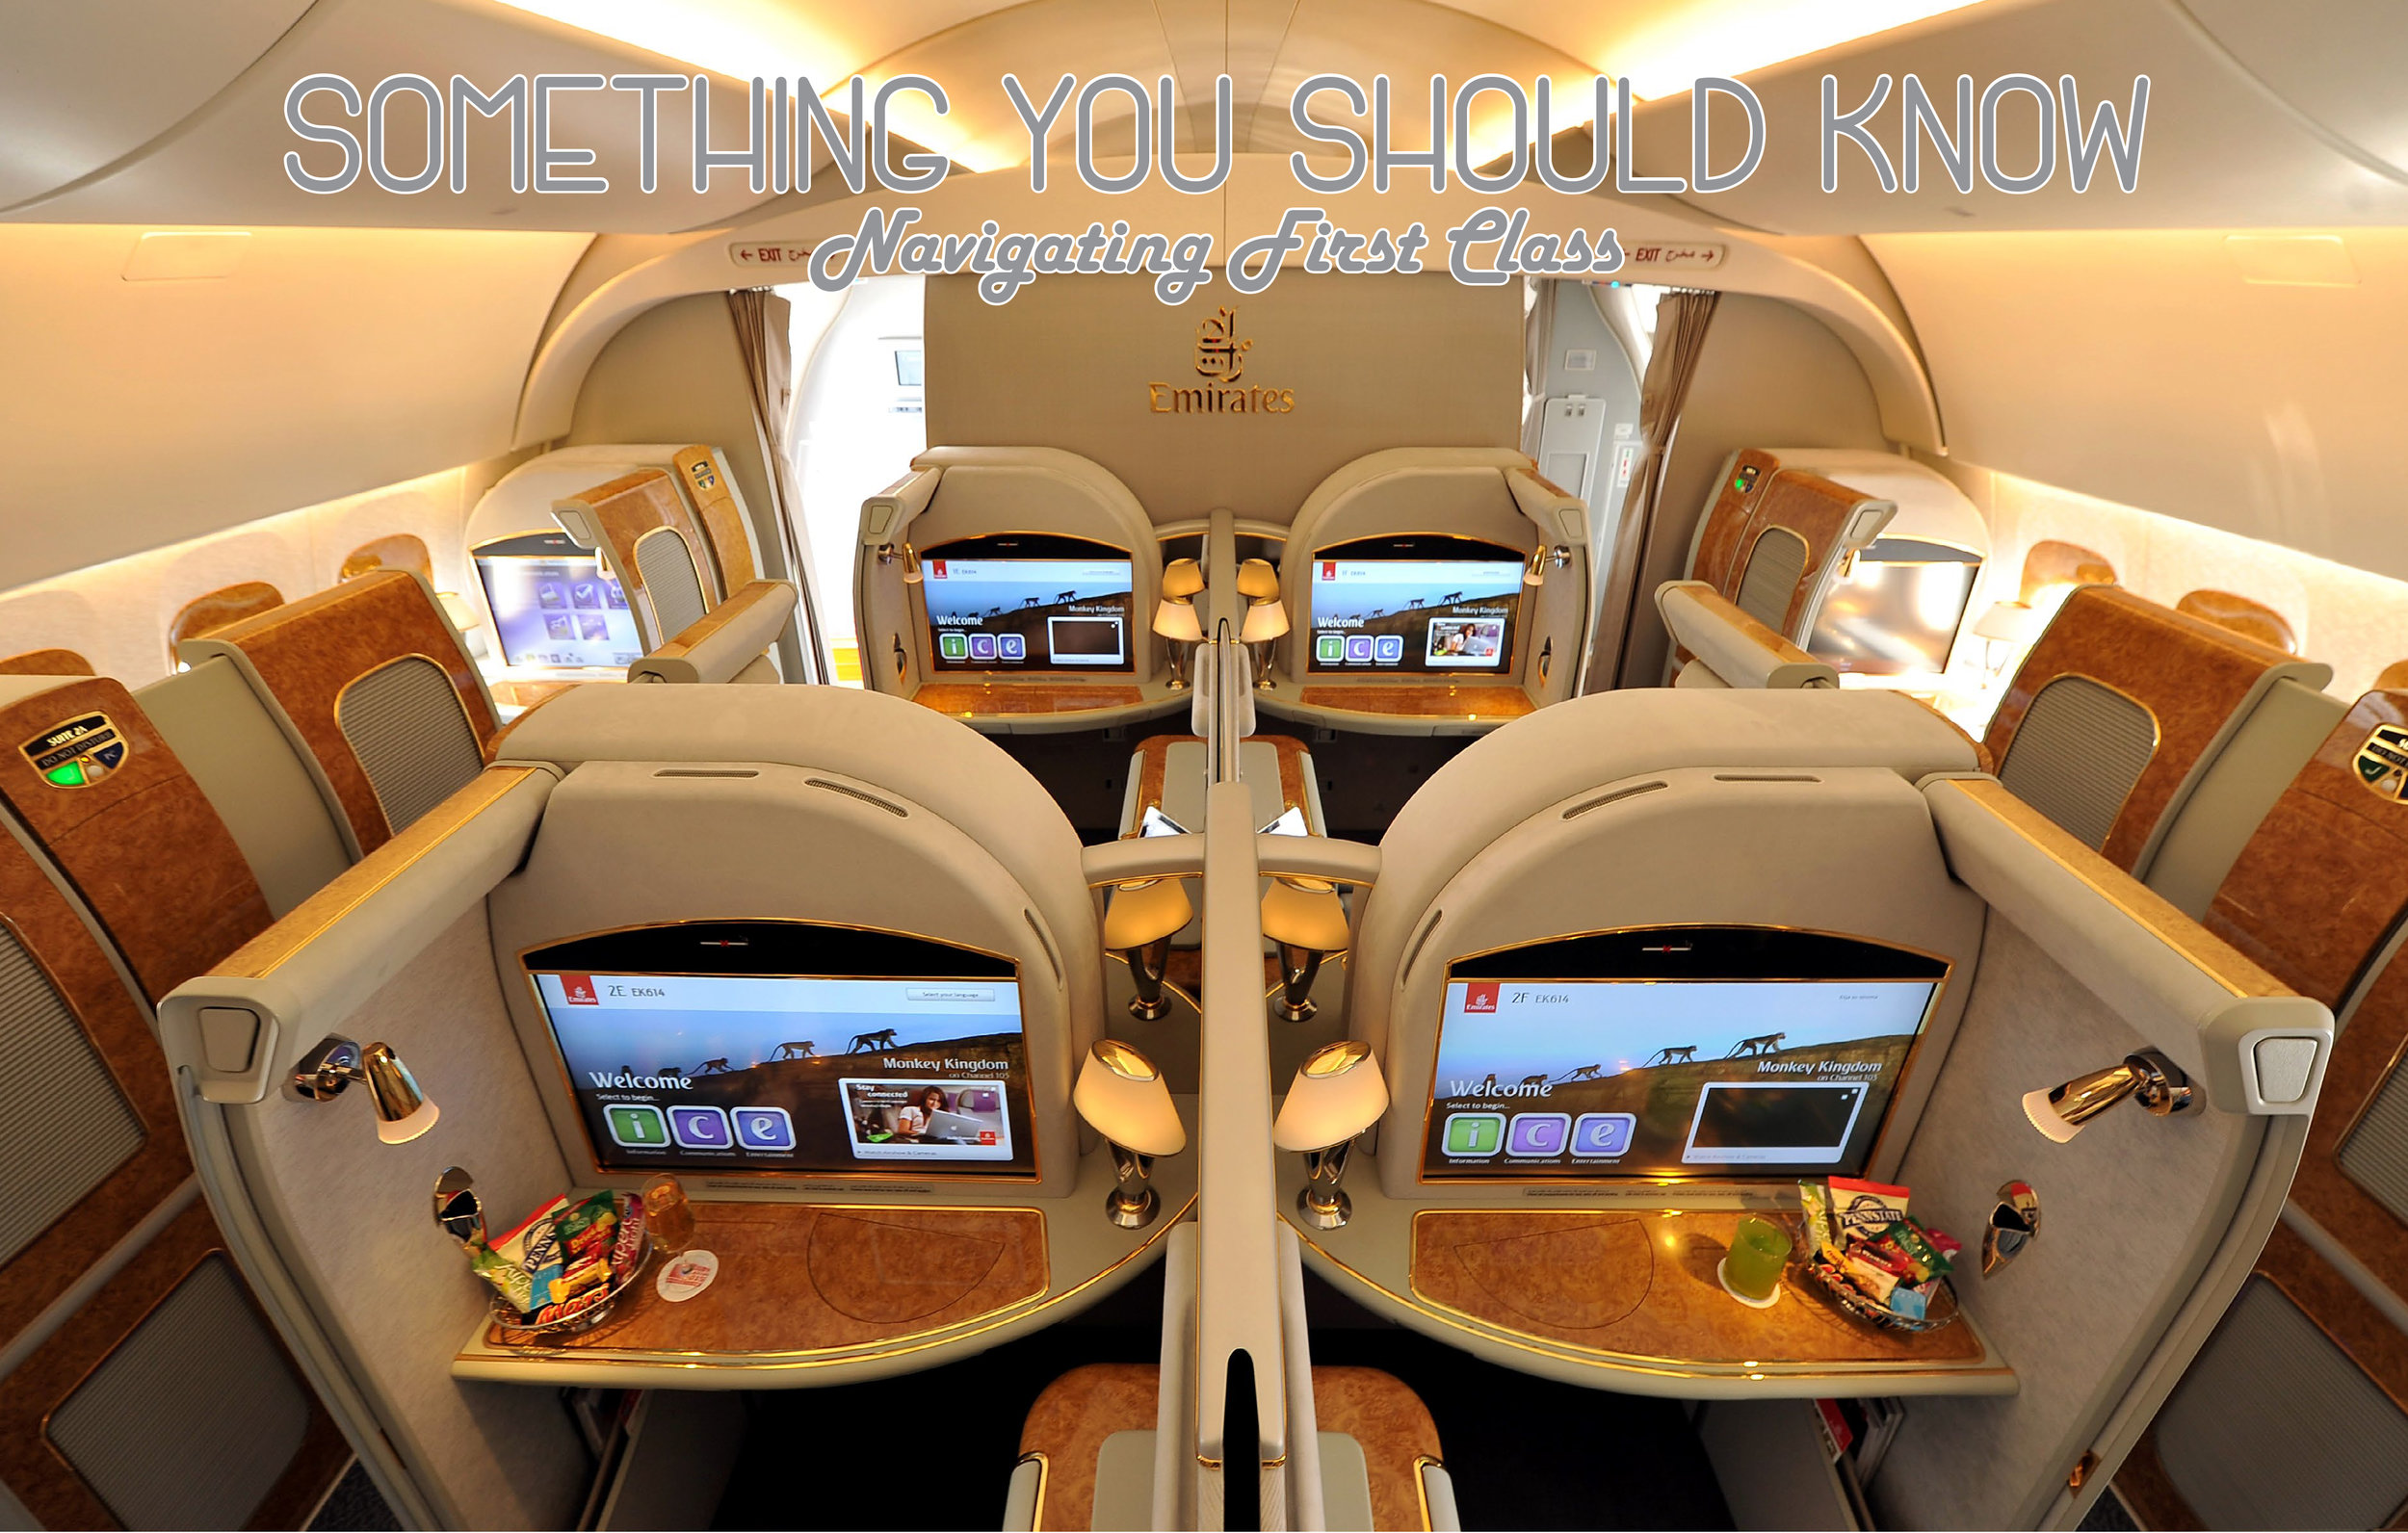 AM JUL SOMETHING YOU SHOULD KNOW, NAVIGATING FIRST CLASS.jpg